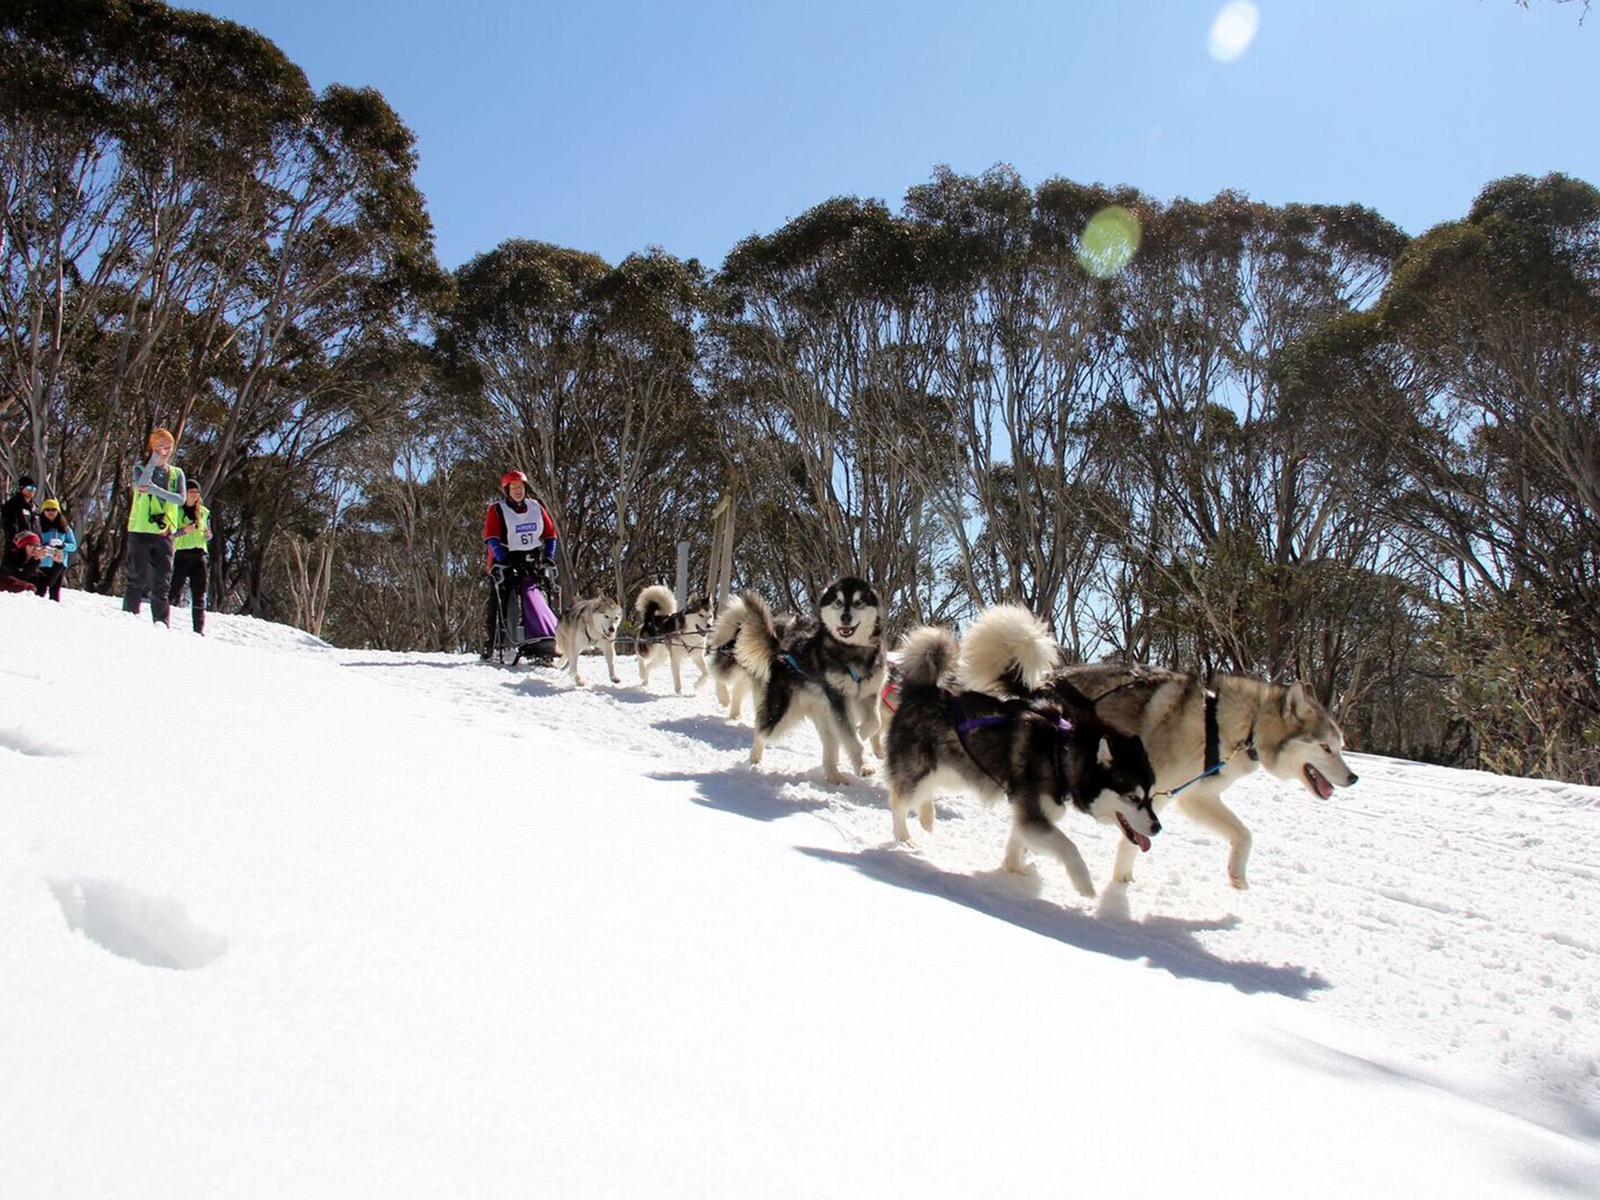 Sled dog racing on snow in Australia